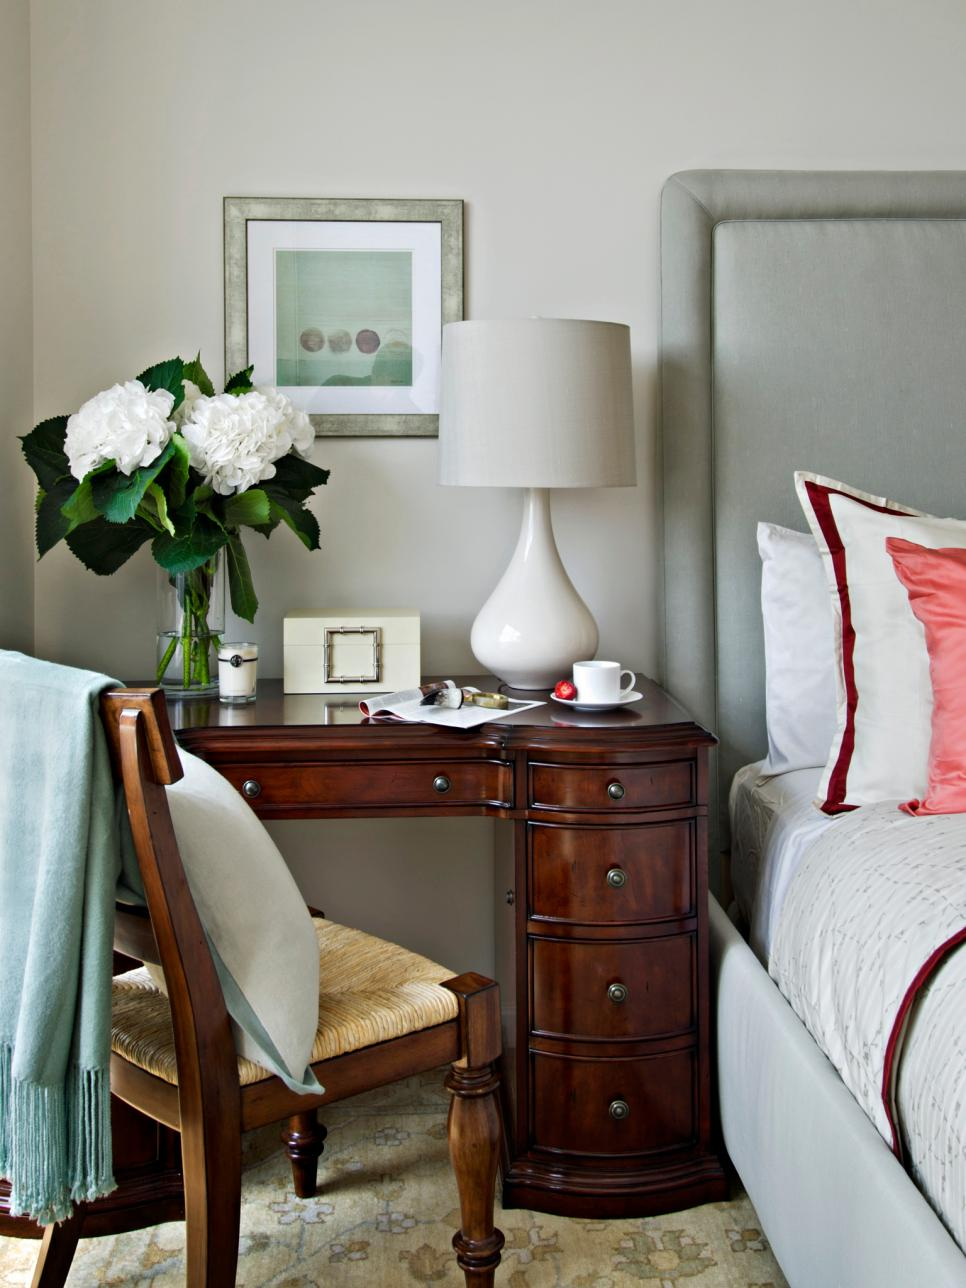 10 Double Duty Nightstands